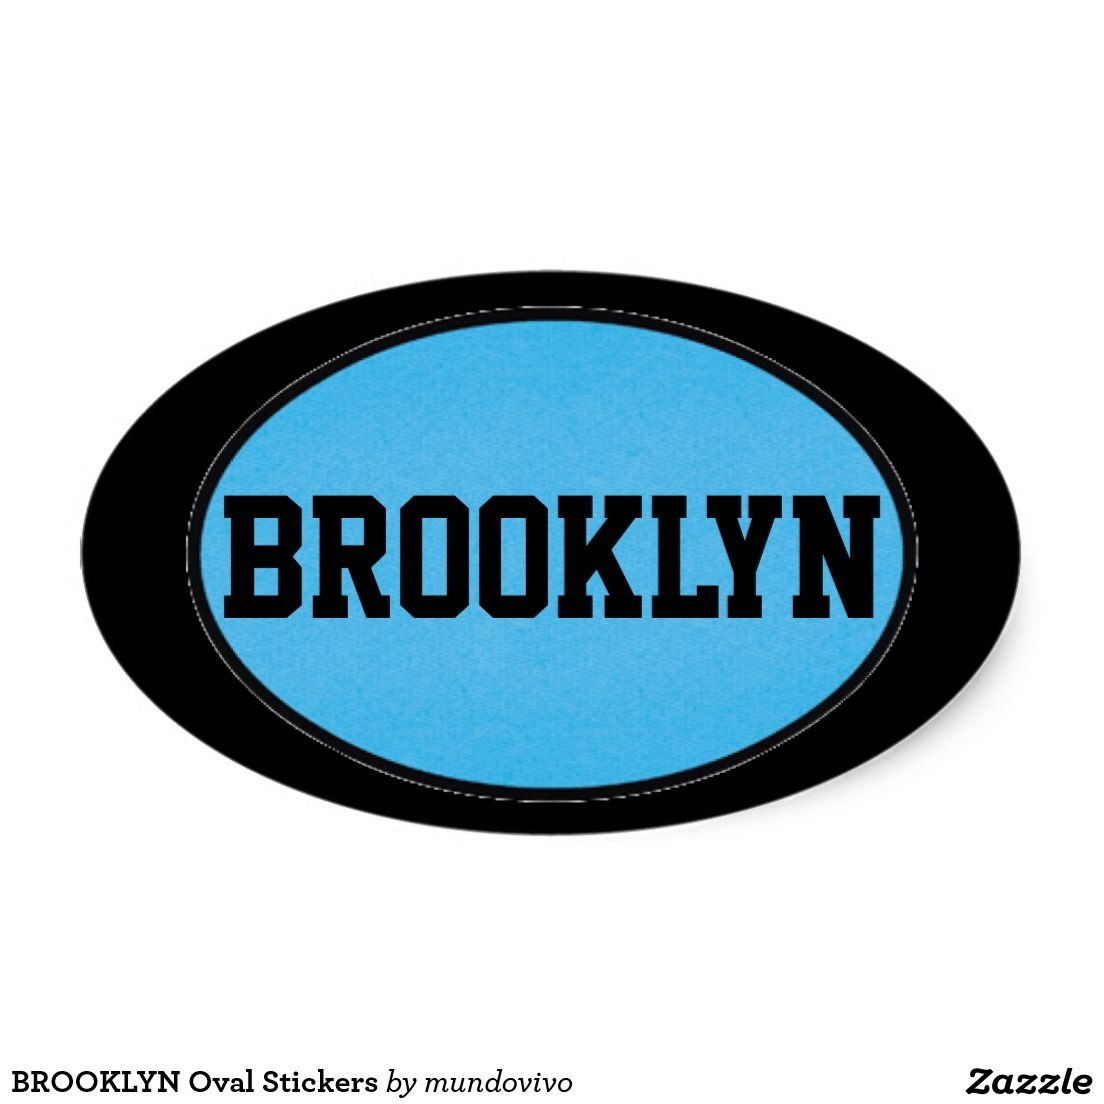 Brooklyn oval stickers